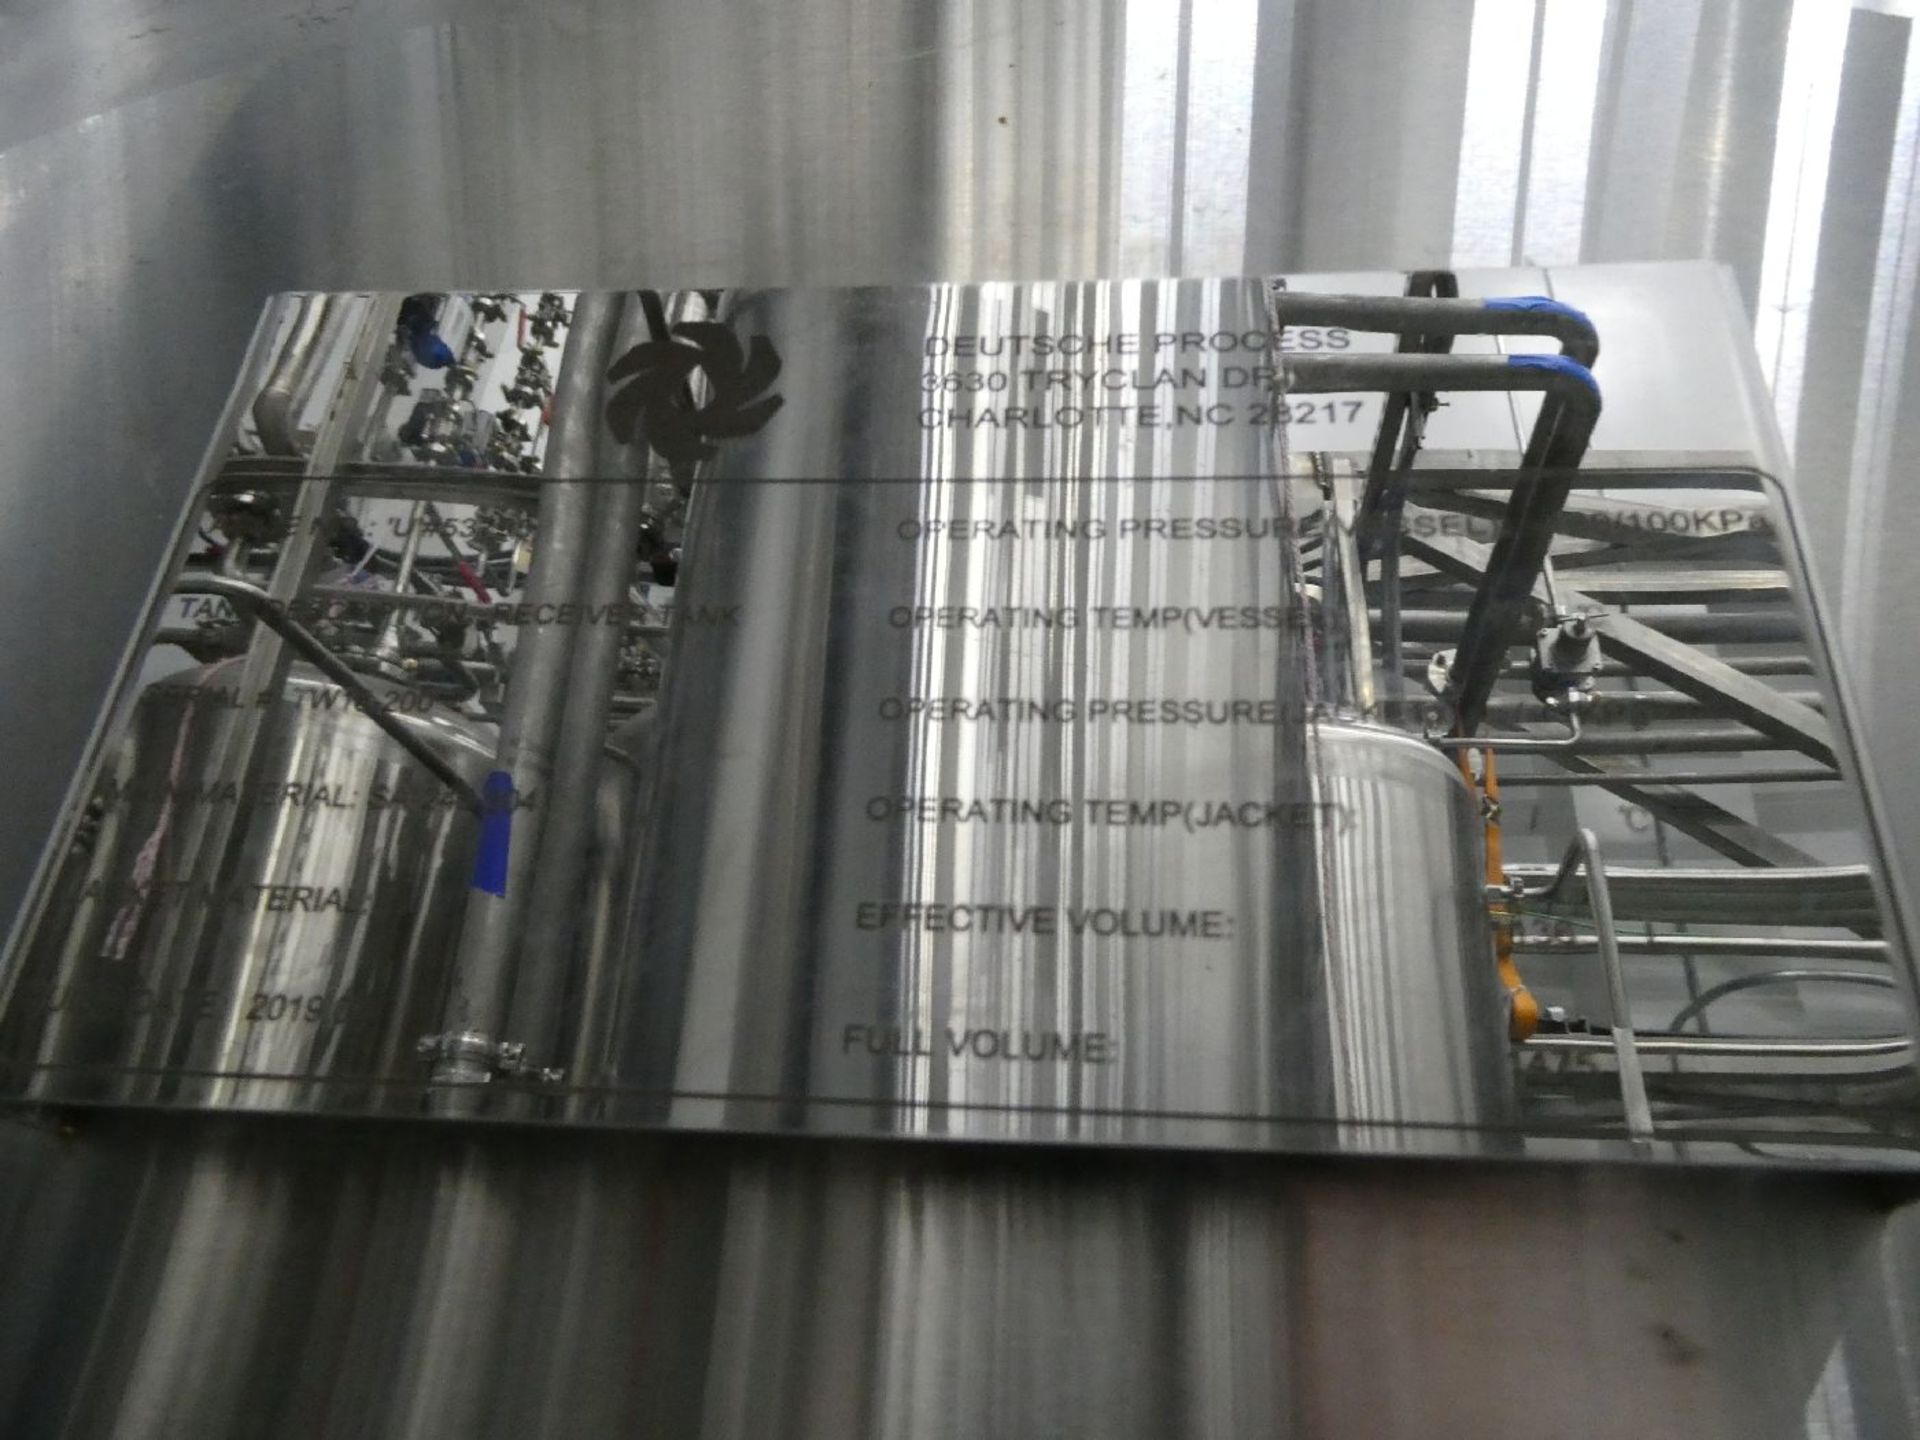 ROTAX Closed Loop Solvent Based Continuous Oil Extraction System - Image 23 of 68